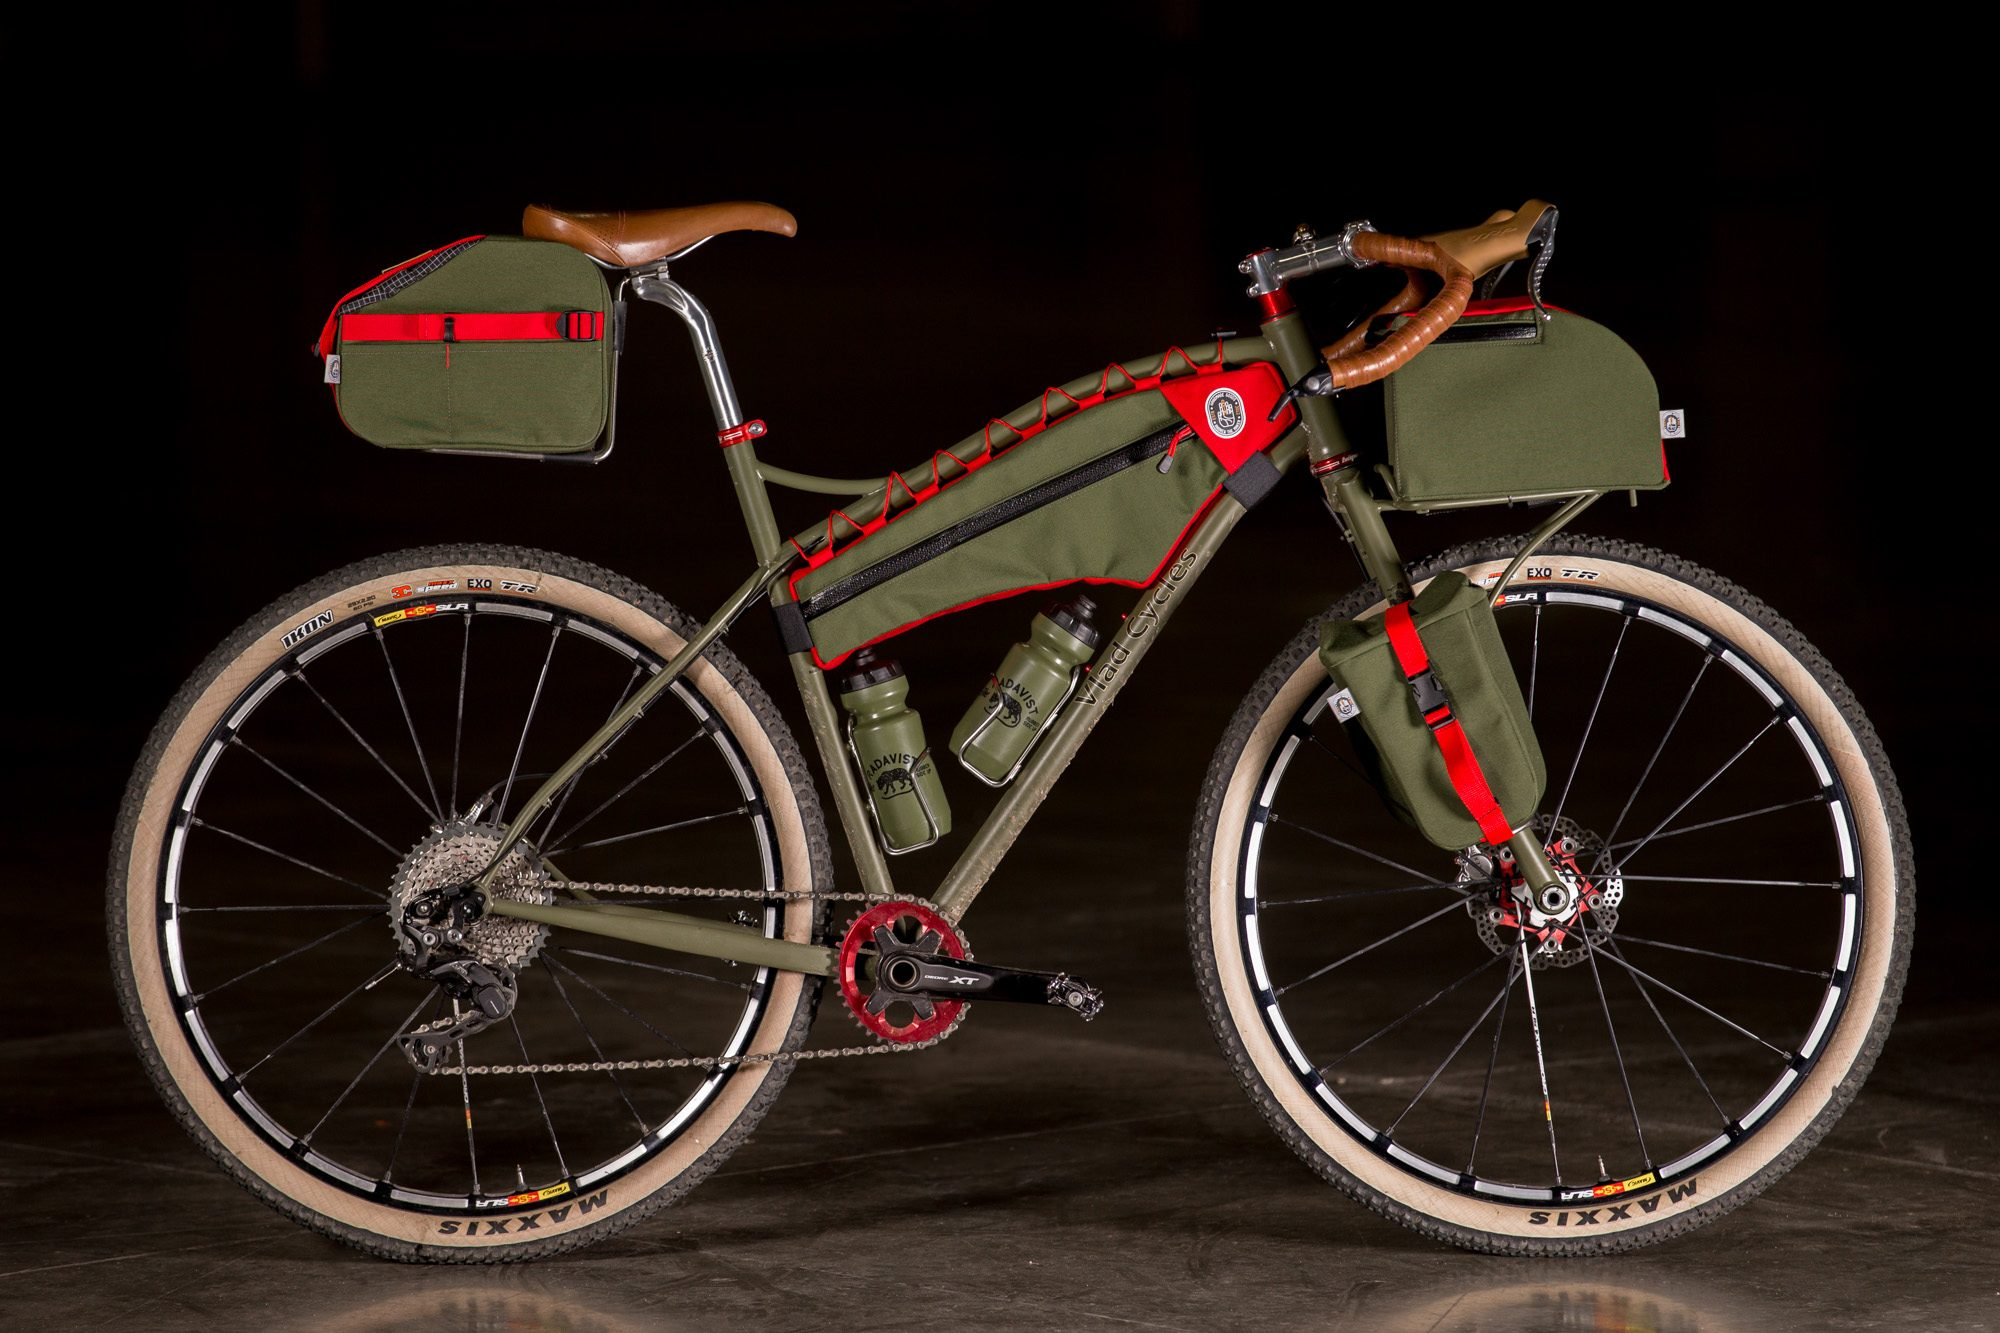 2017 Nahbs Vlad Cycles Dirt Tourer With Andrew The Maker Bags